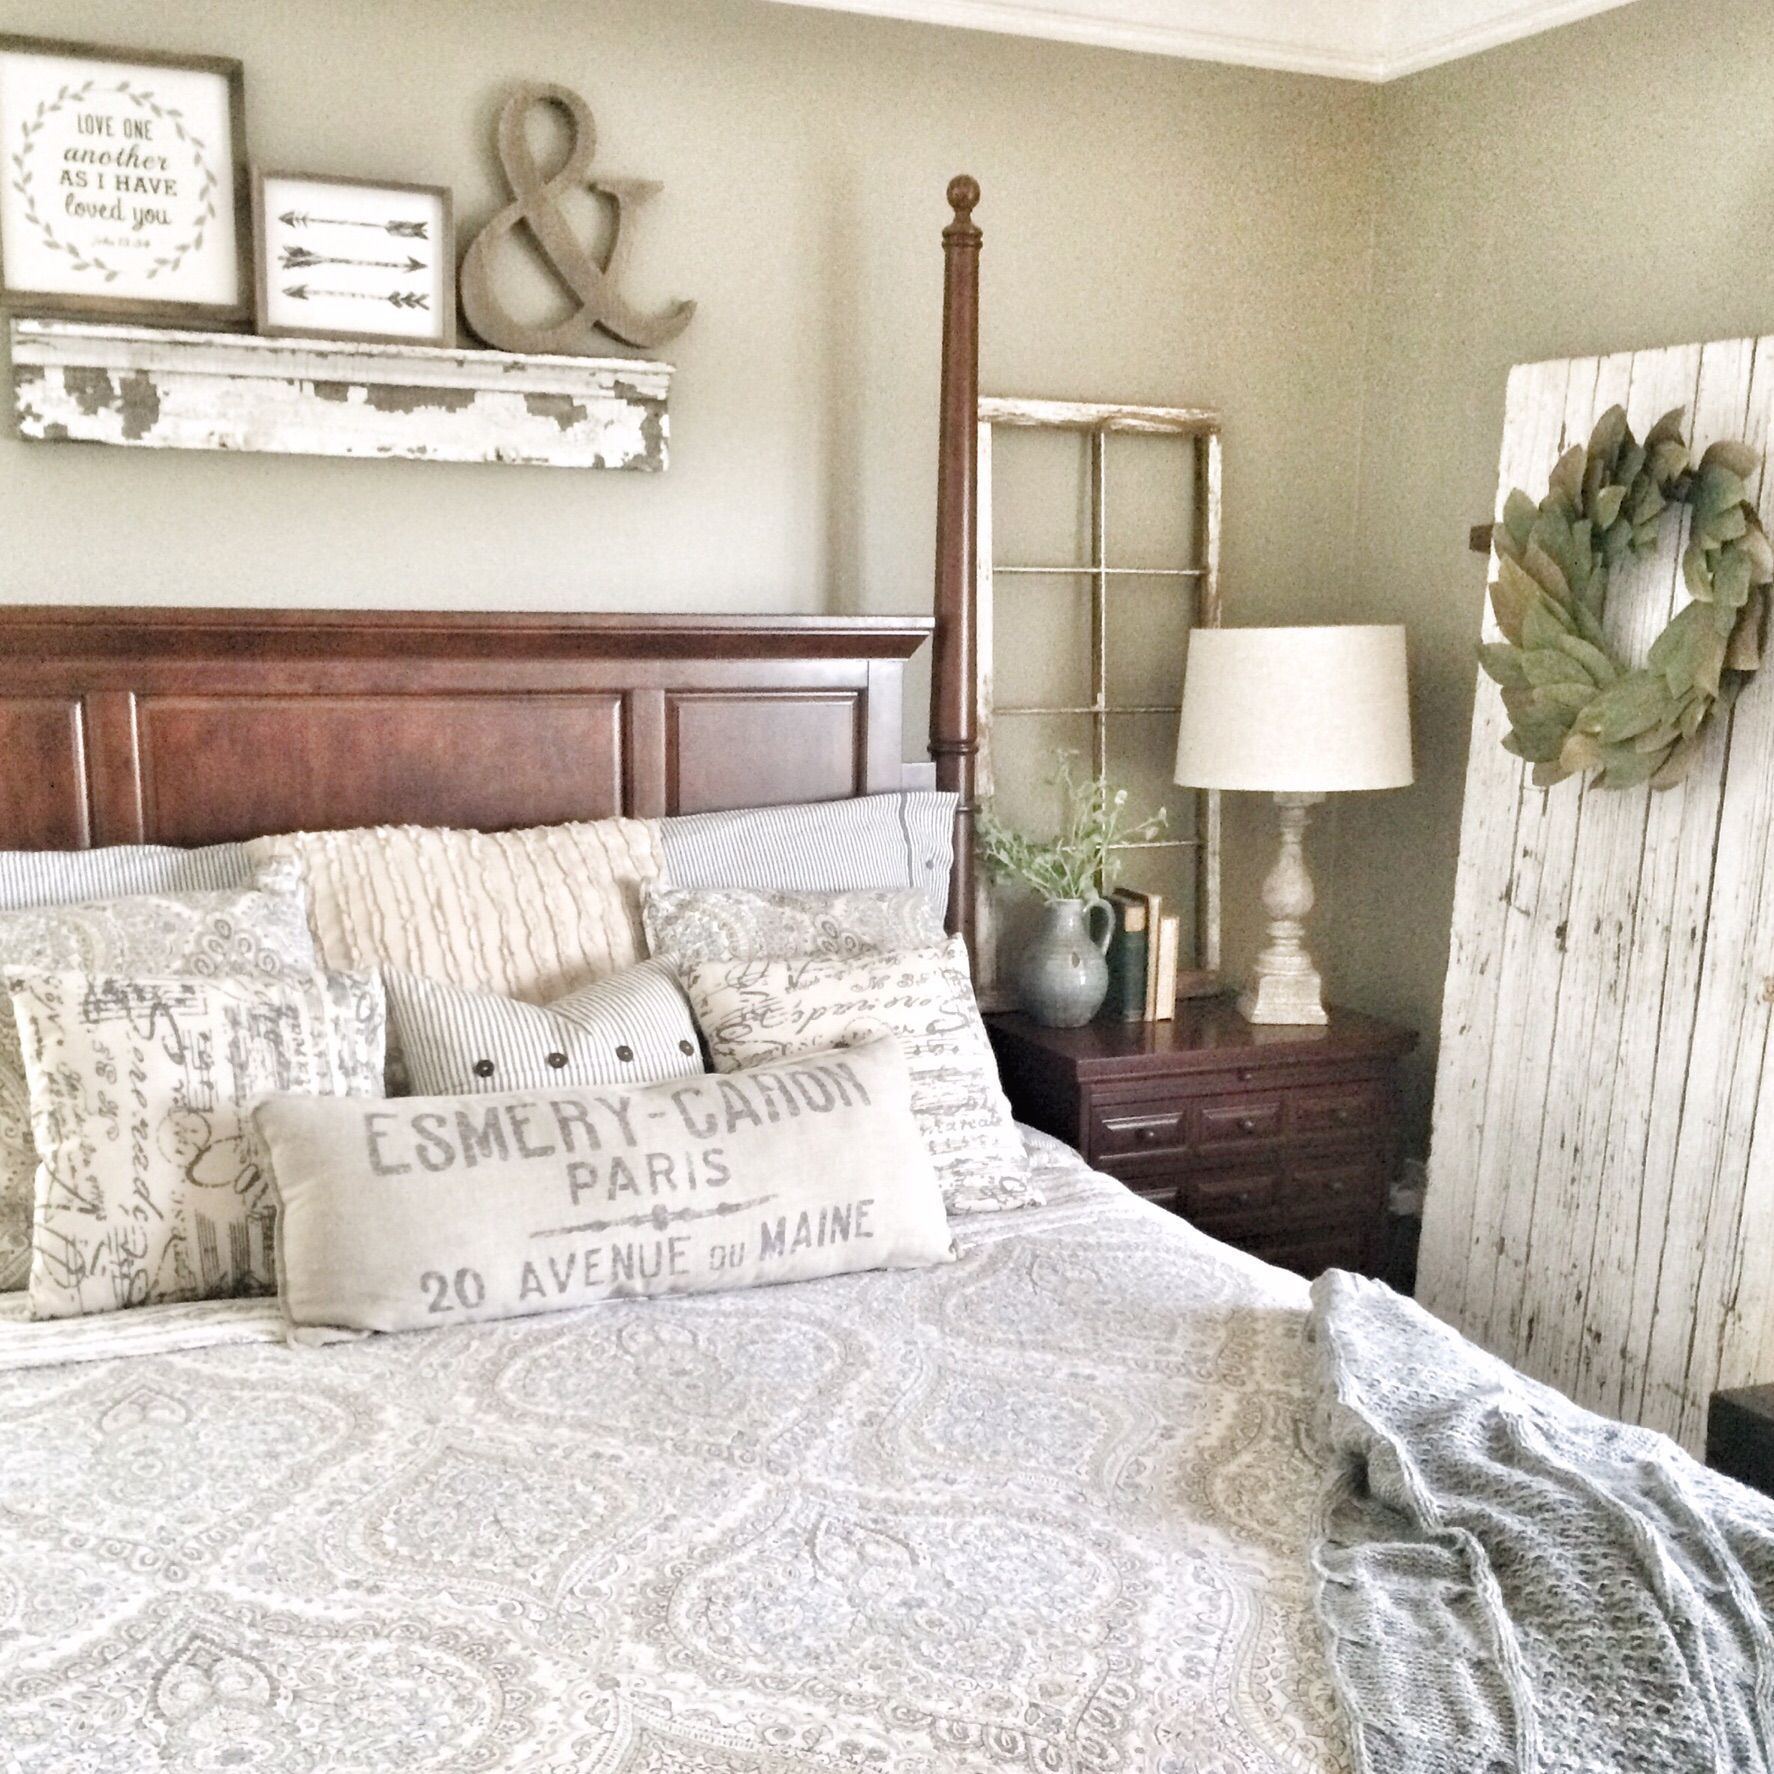 Inspiring Rustic Bedroom Ideas To Decorate With Style: Bless This Nest Blog